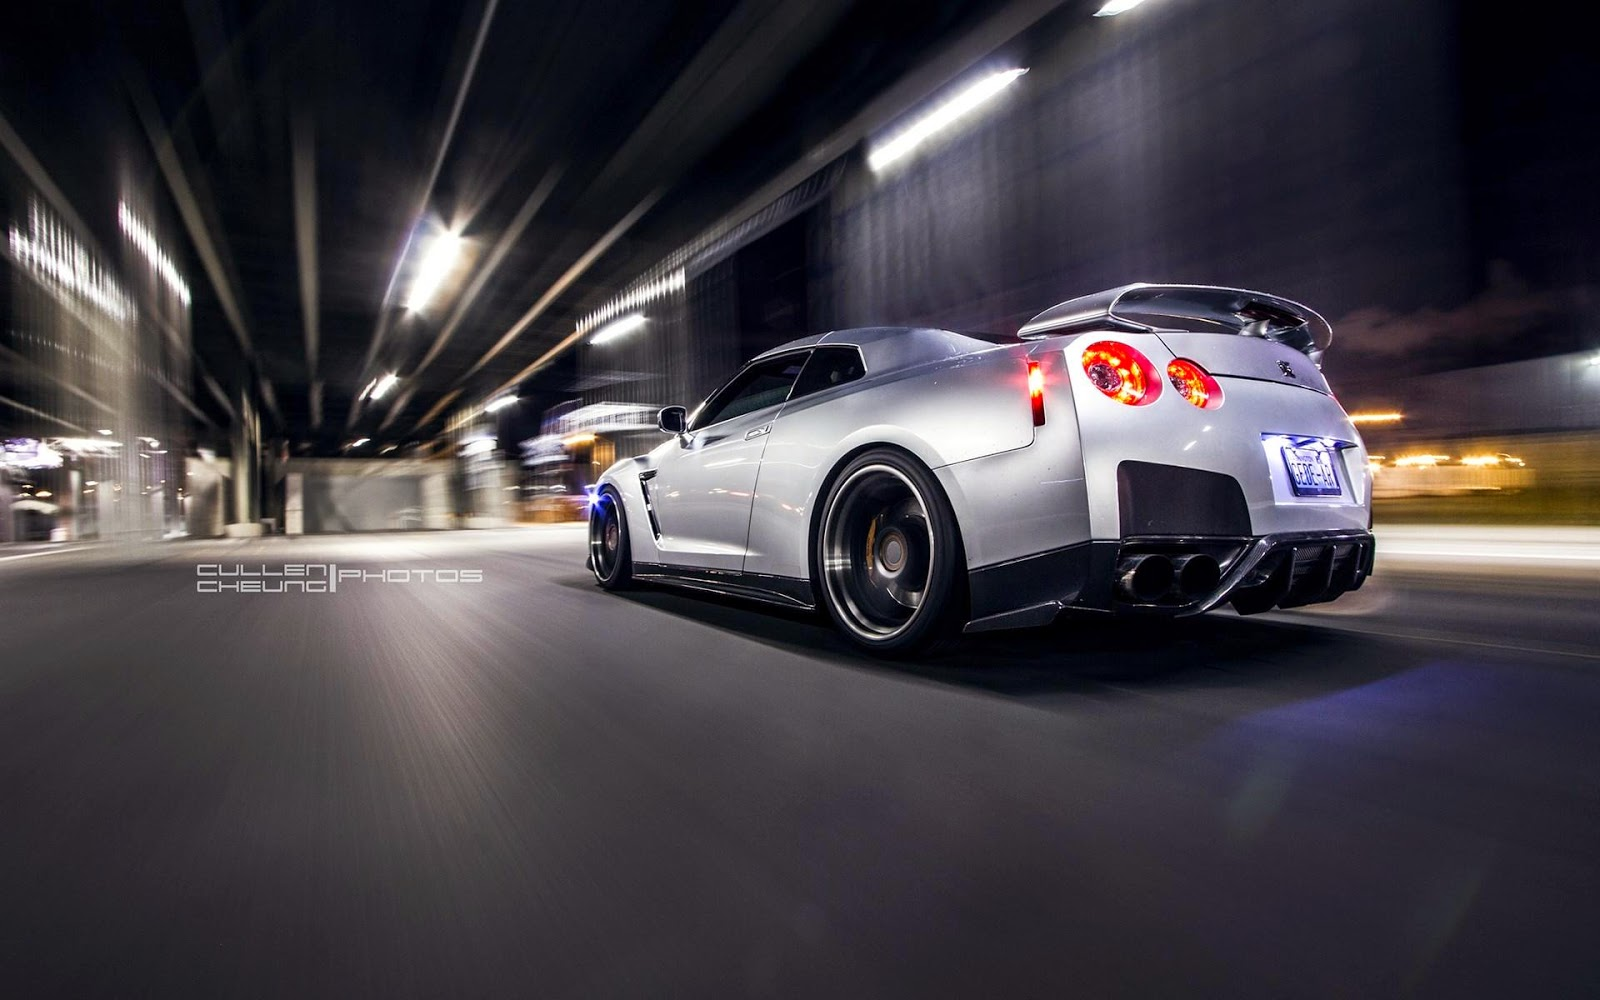 wallpaper photography : hd night nissan gt-r r35 car wallpapers